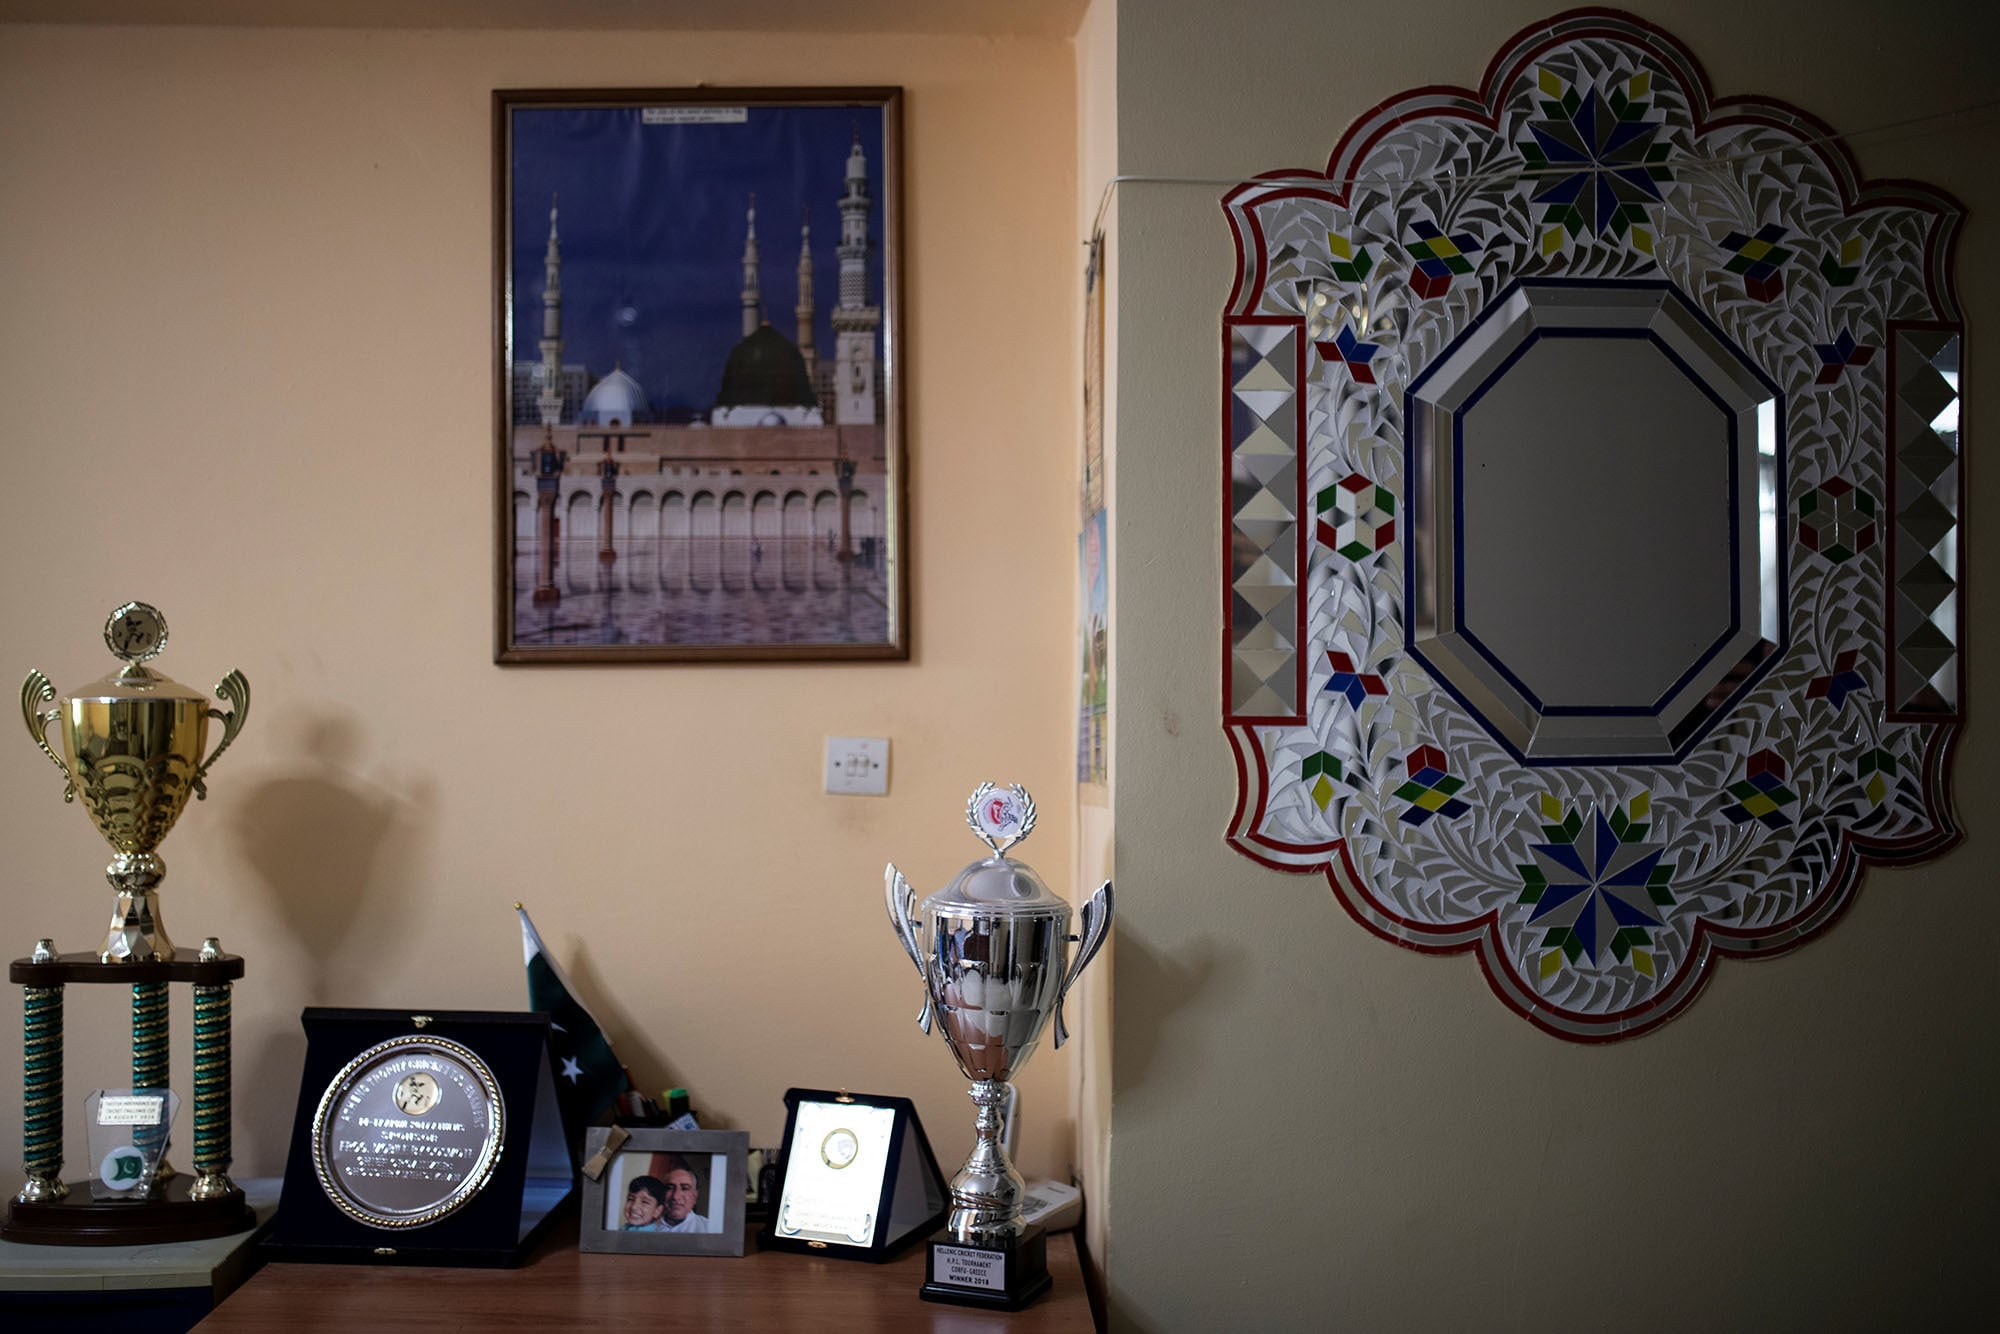 Trophies and awards of Pakistani former Greece national cricket team player Mehdi Khan Choudhry, are displayed in his apartment in Athens Greece on June 30. — Reuters